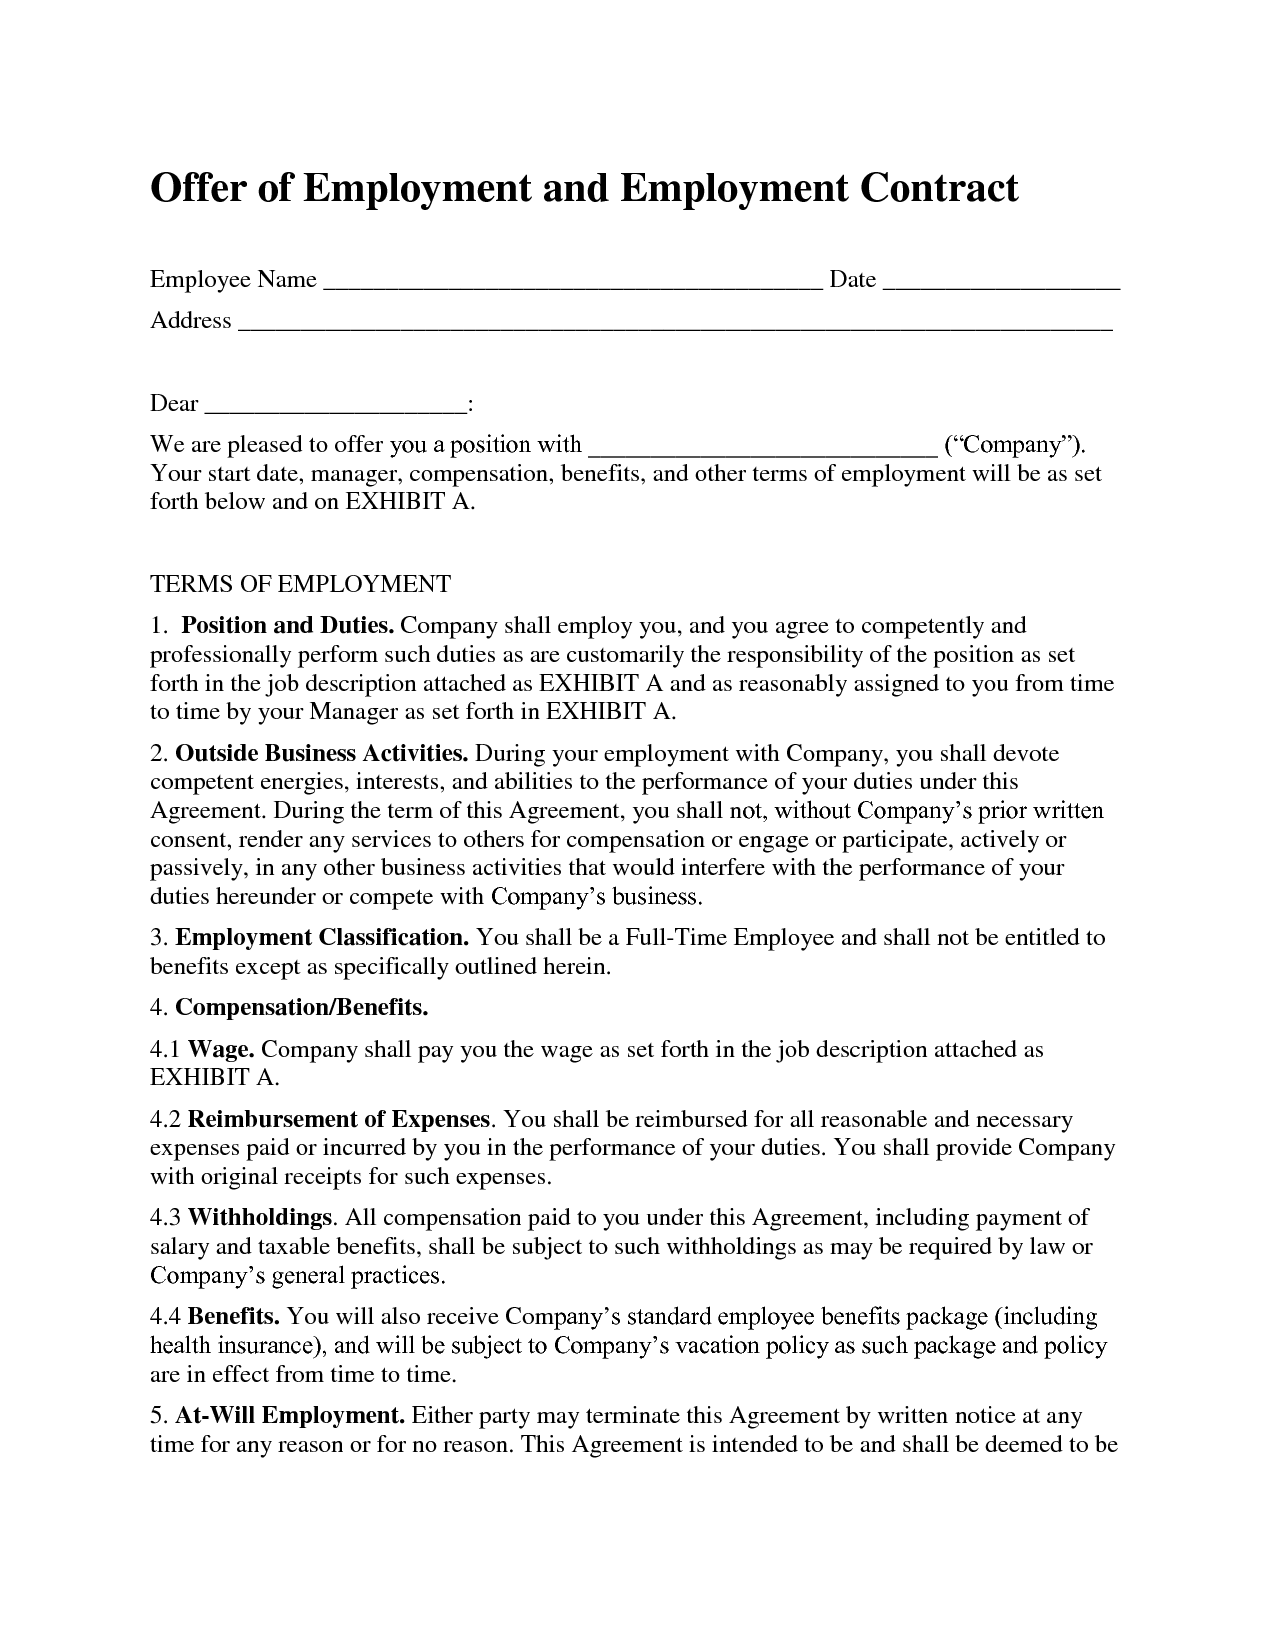 employee contract example Londa.britishcollege.co